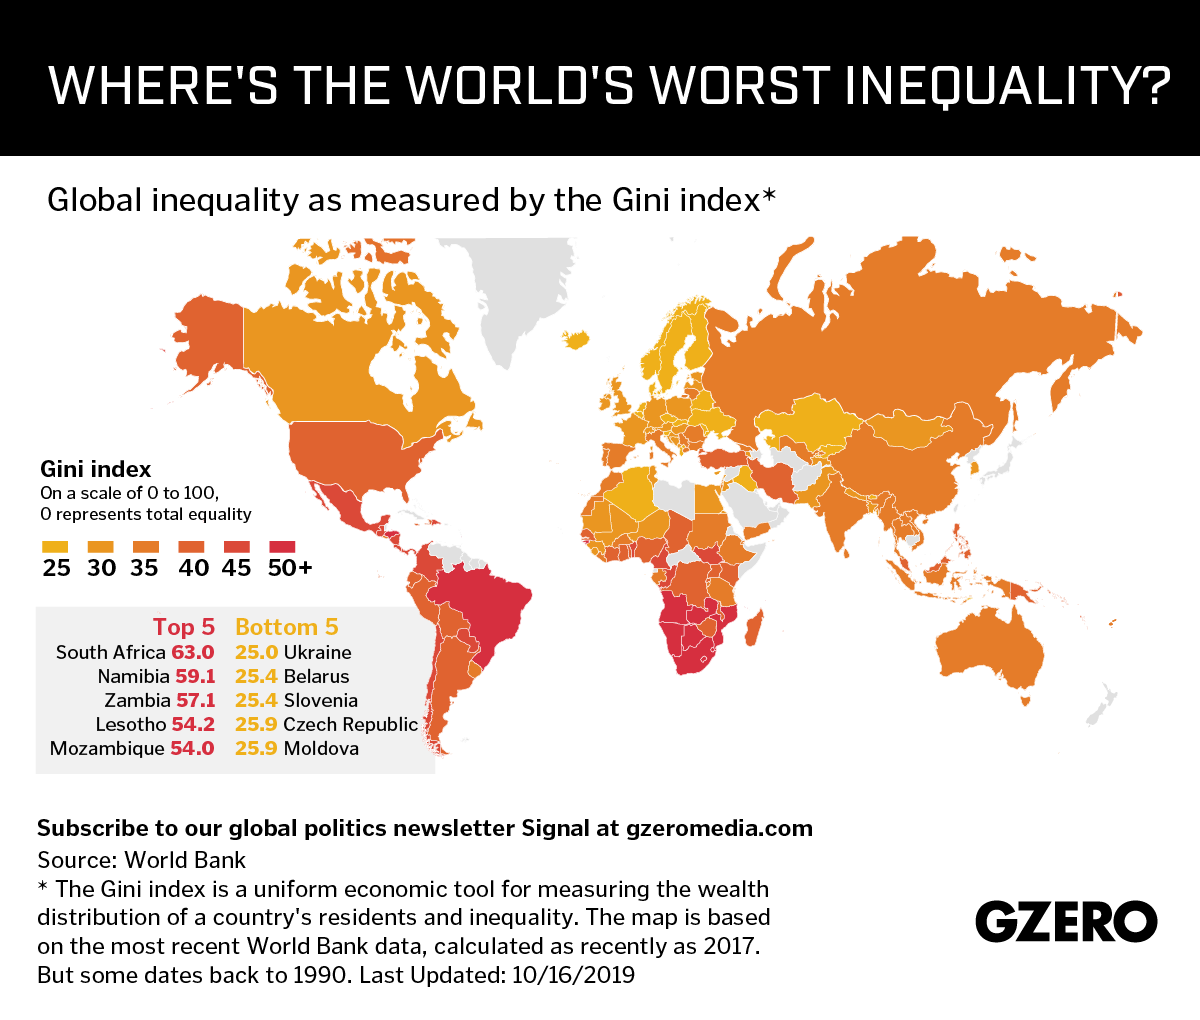 Graphic Truth: Global inequality